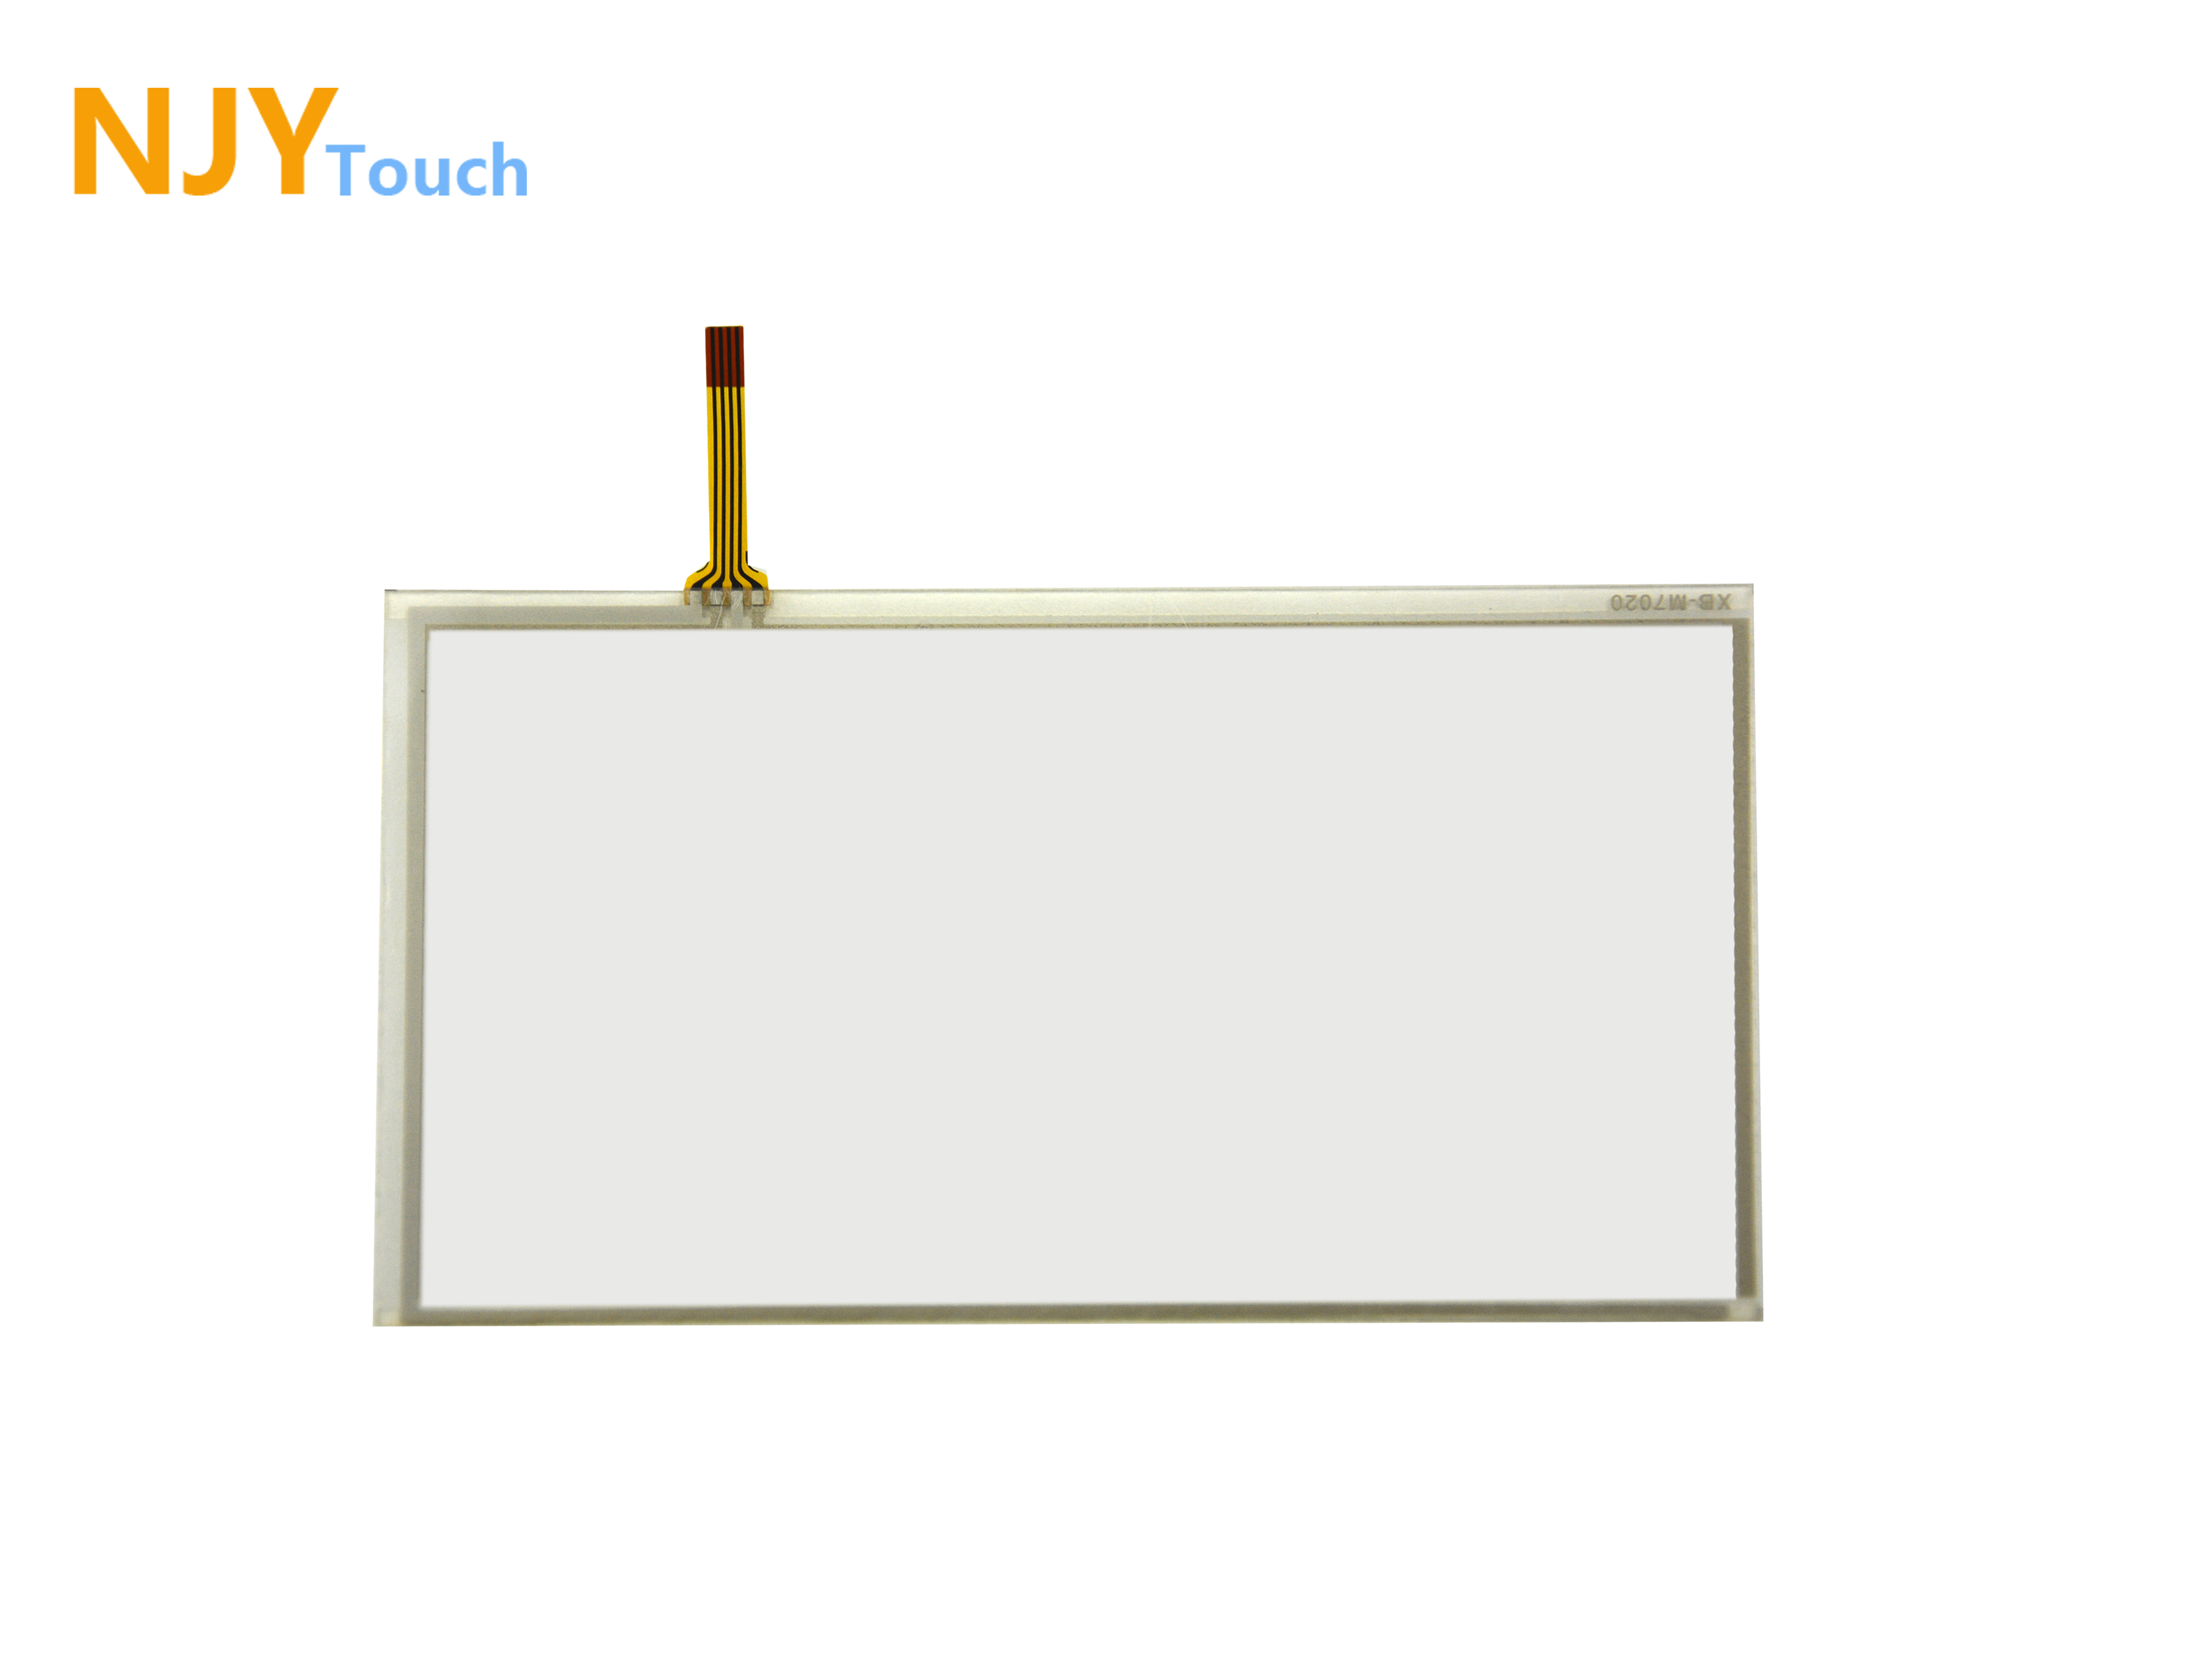 6.8inch 4 Wire Resistive Touch Panel 167mm x 93mm For C070VW03 V0 LCD Screen